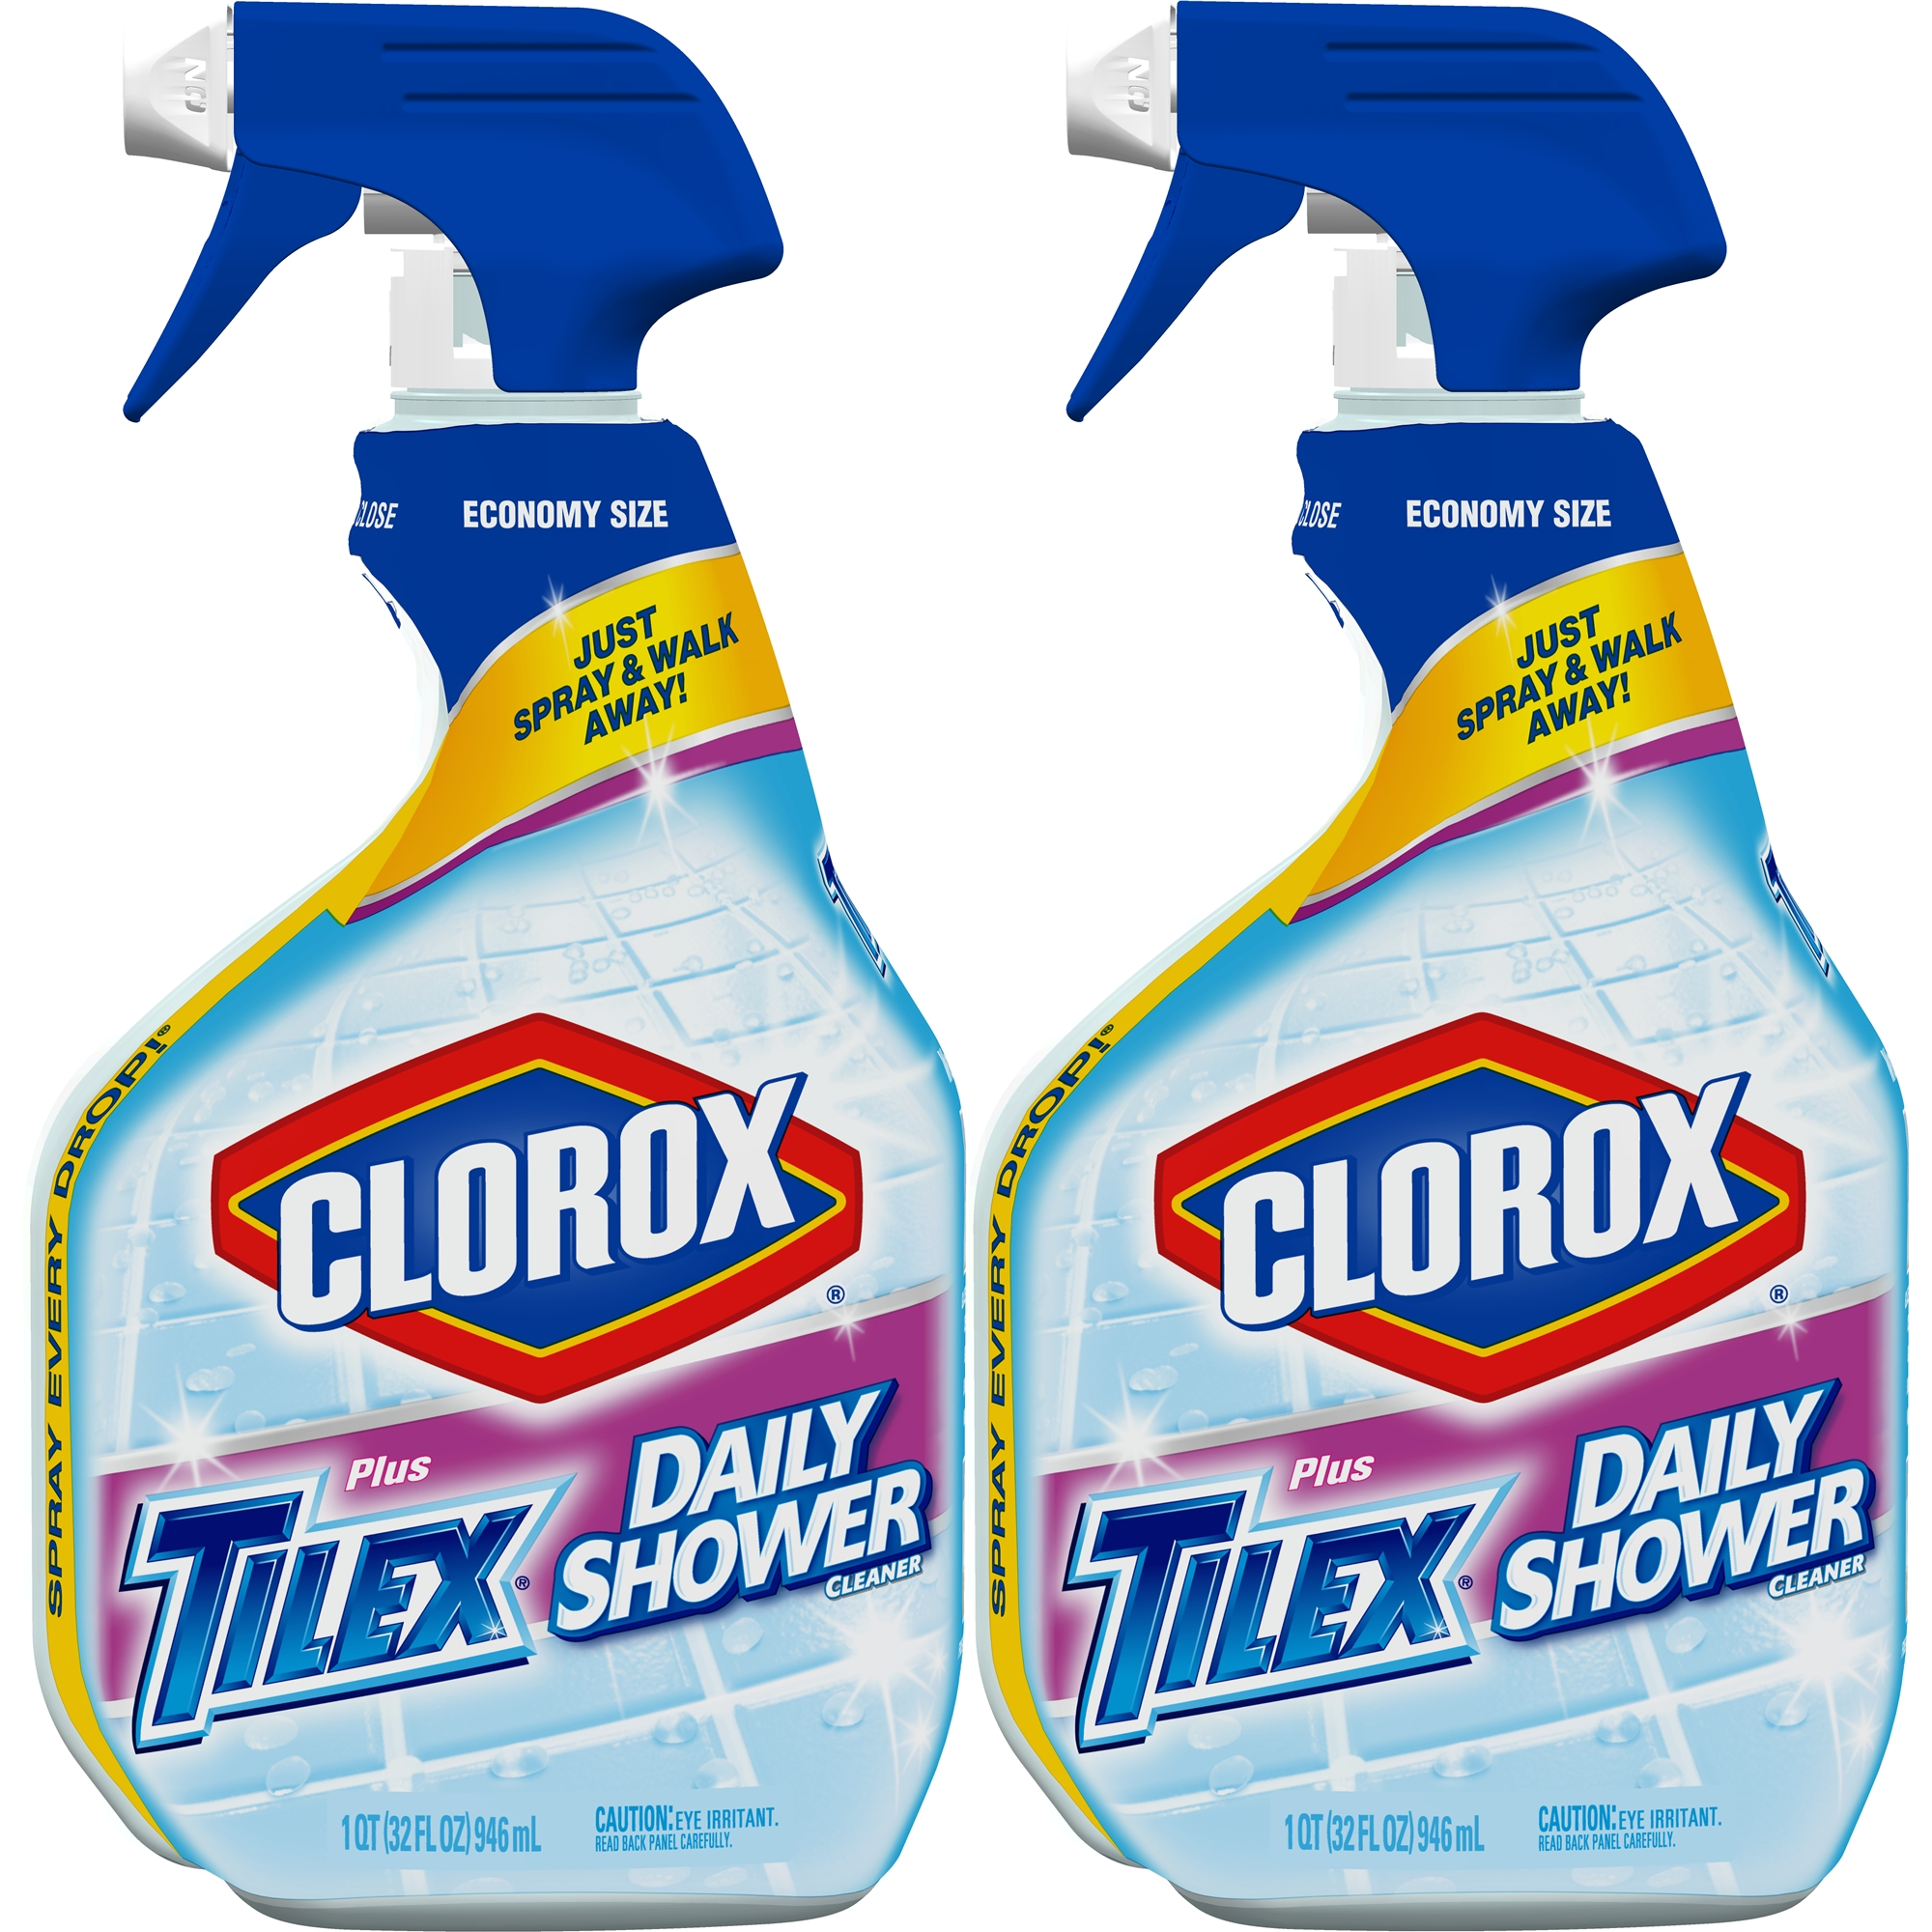 Clorox Plus Tilex Daily Shower Cleaner, Spray Bottle, 32 oz Bottles, 2 Pack